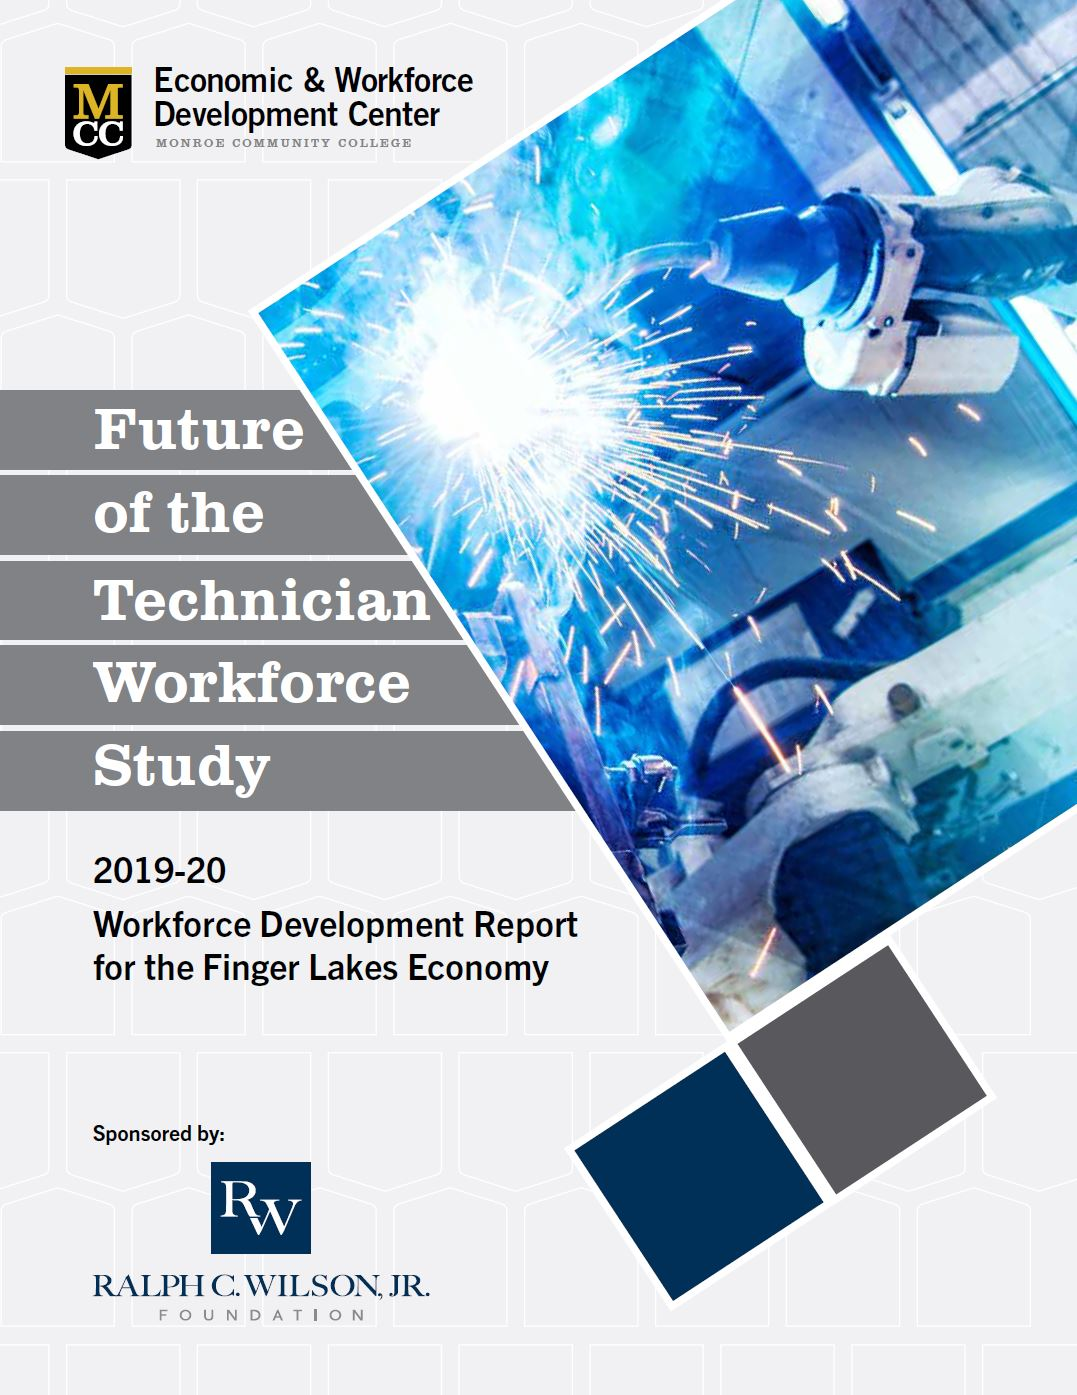 Download the Future of the Technician Workforce Study